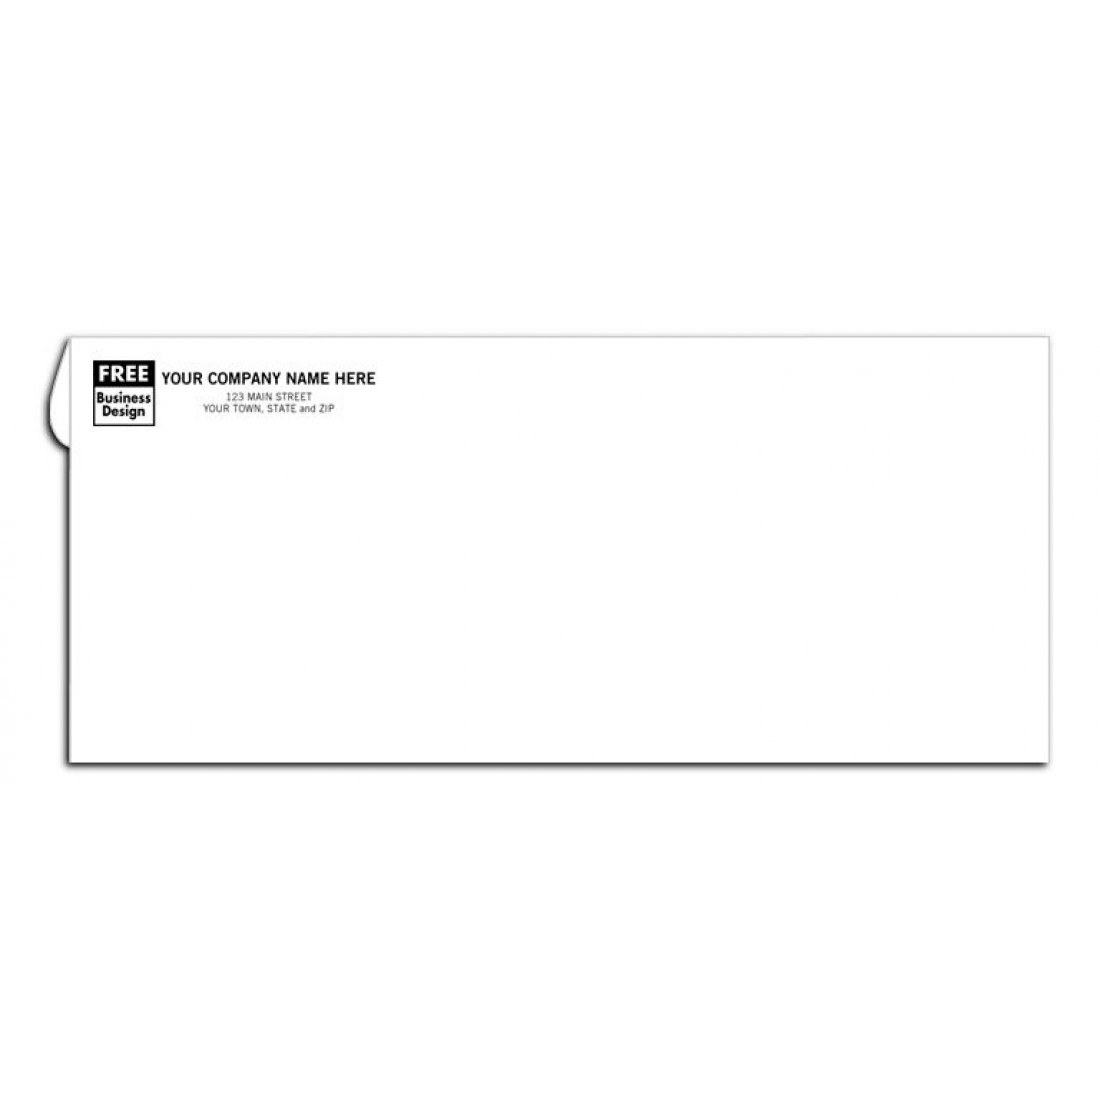 no 10 custom business printed envelopes no window free shipping